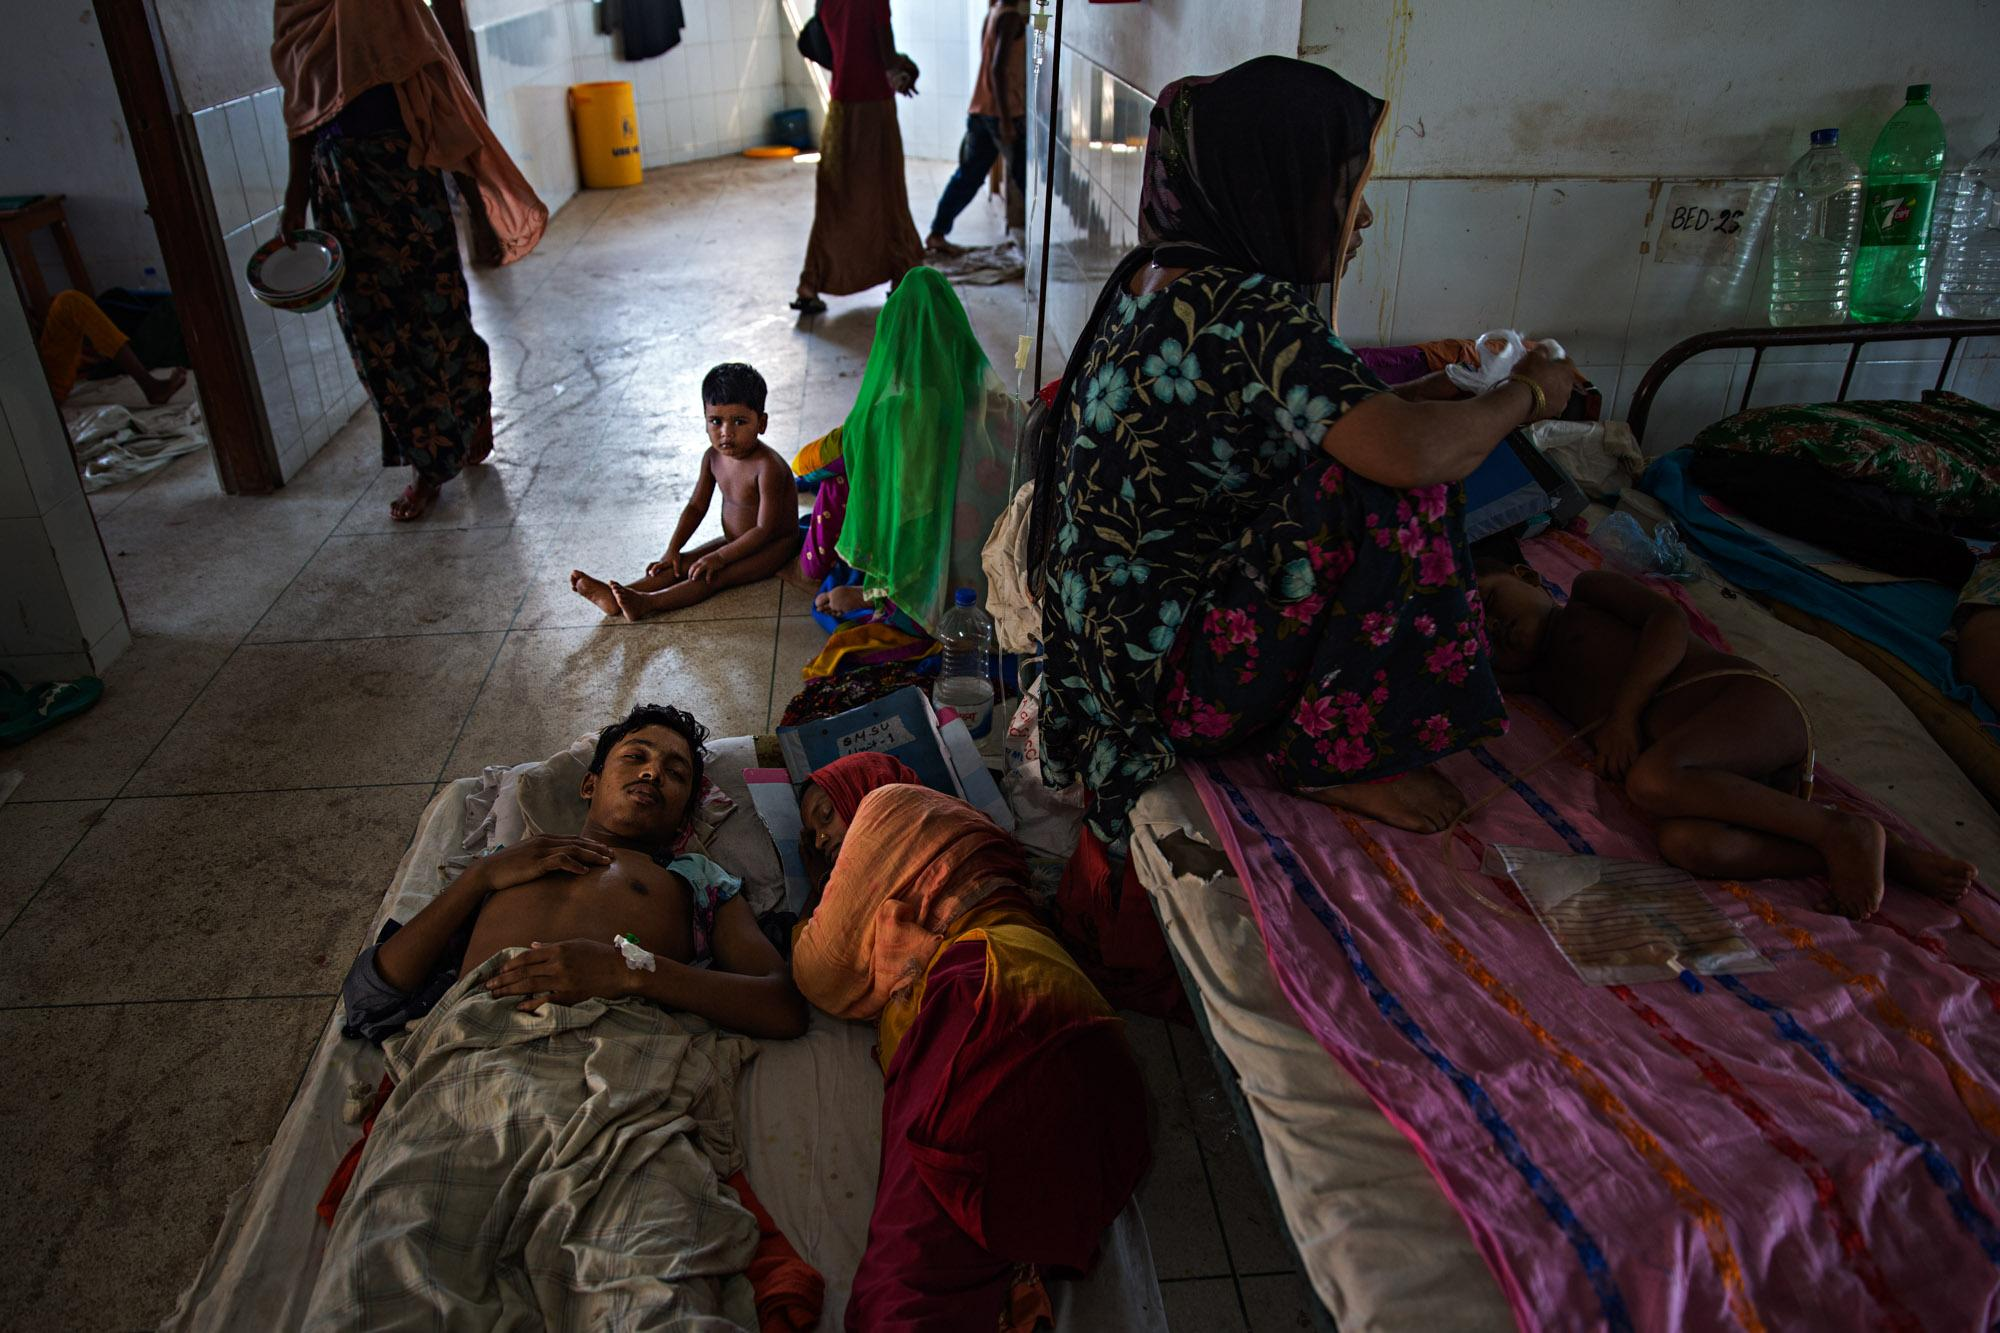 Rohingya refugees find space to sit or rest wherever they can in a hospital in Cox's Bazar. Many suffered from exhaustion or malnutrition, while others suffered from gunshot or knife wounds, burns and worse, not to mention psychological trauma.